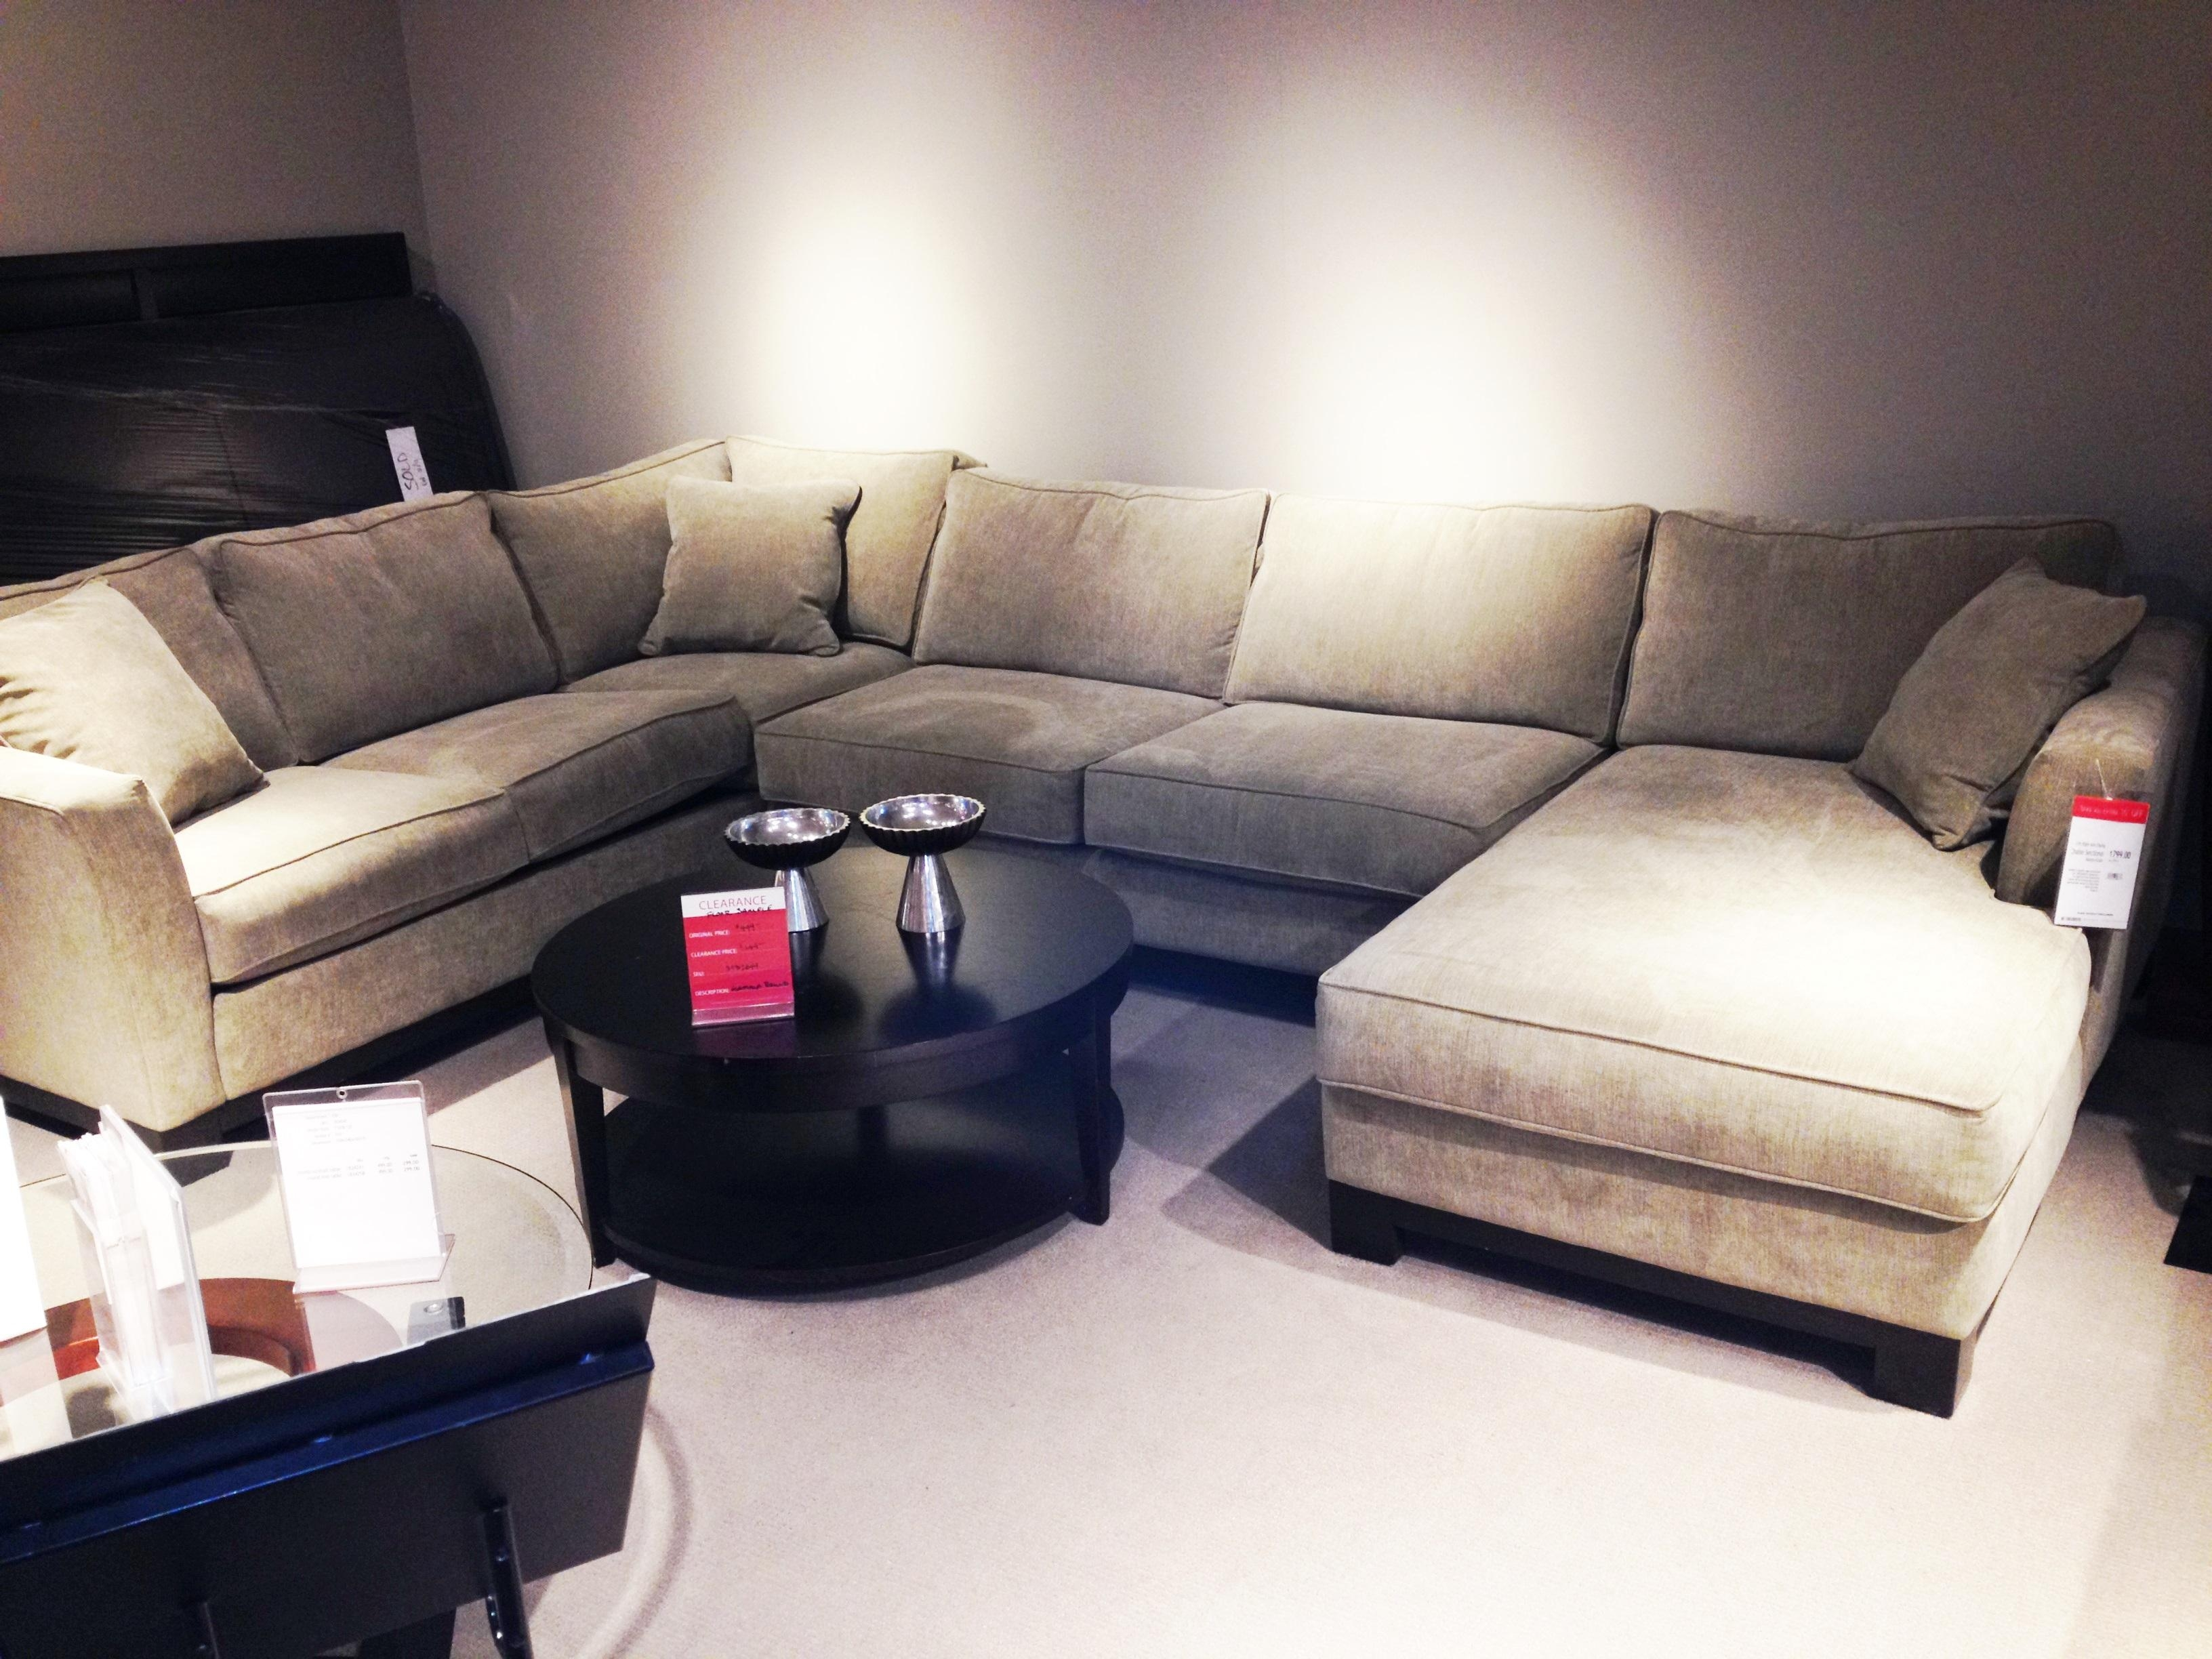 The Sectional Sofa Saga | Mid Century Modern(Ization) Within Macys Leather Sectional Sofa (View 15 of 20)